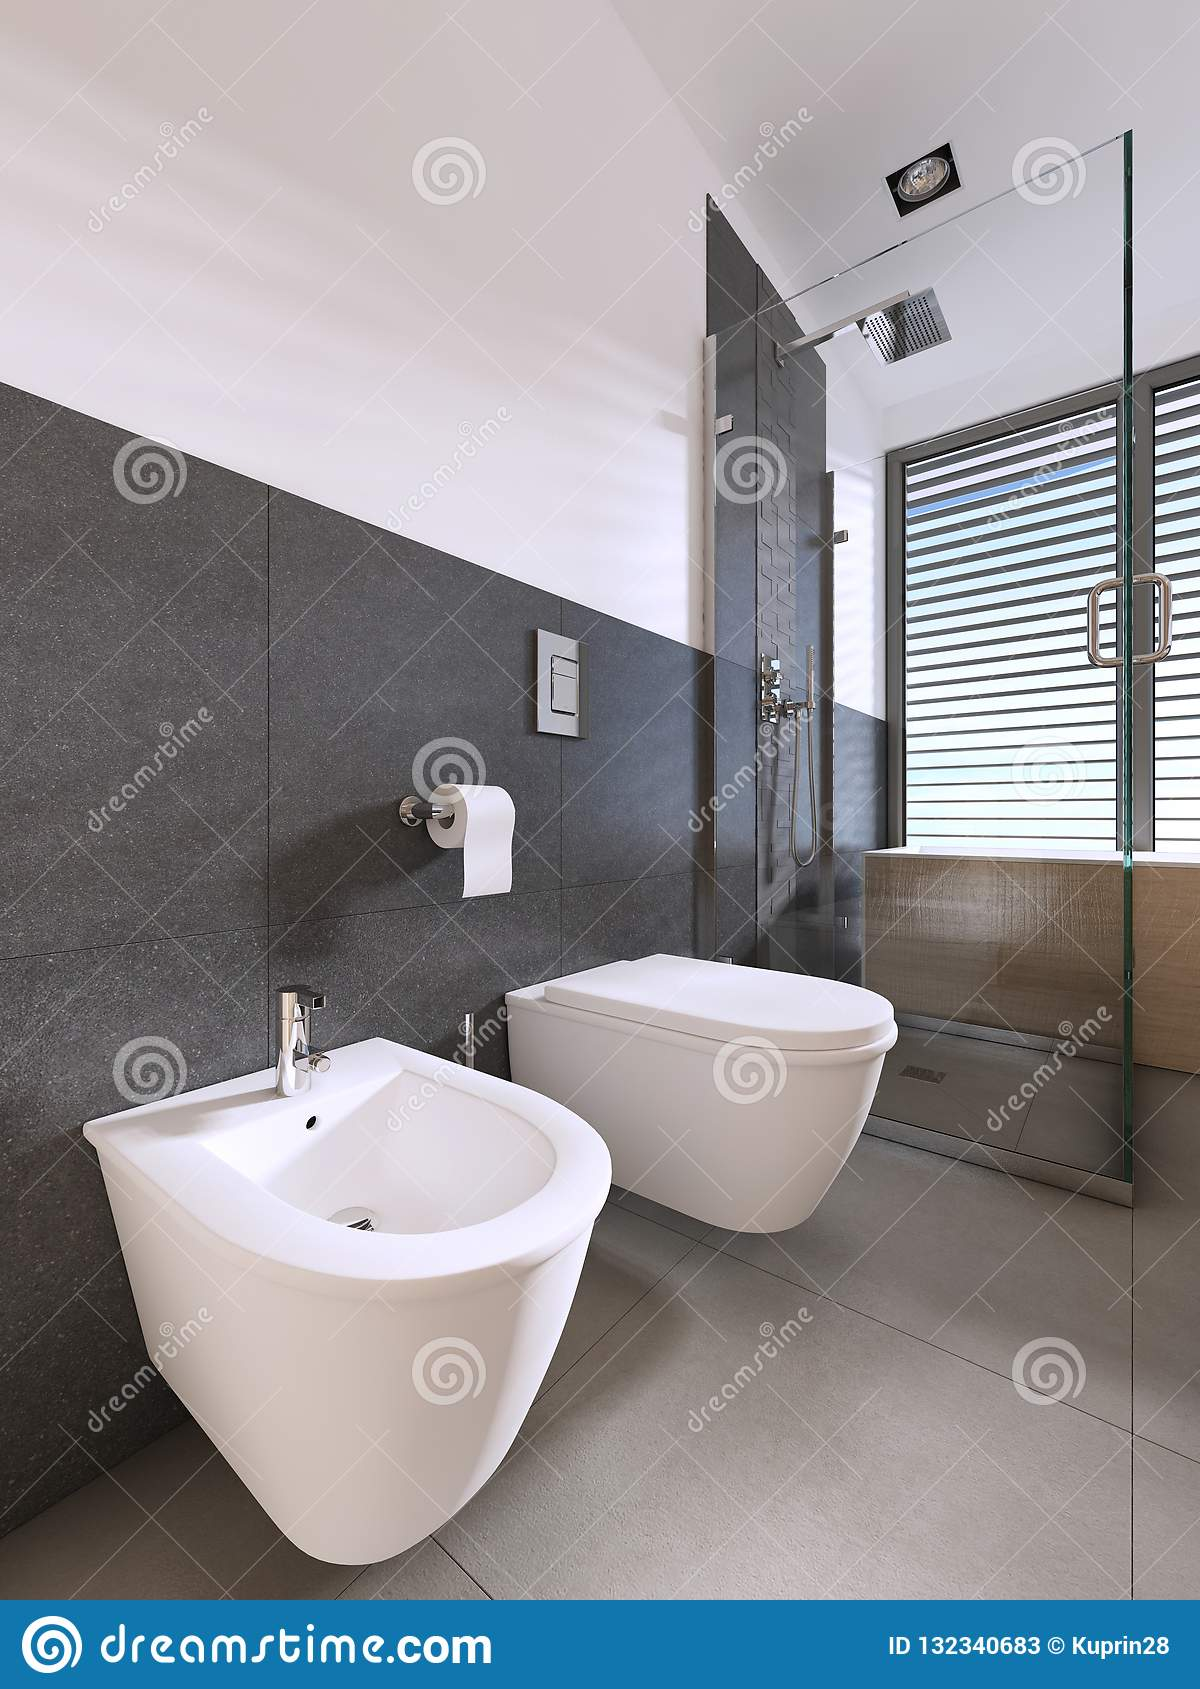 Toilet And Bidet Modern Bathroom Of Scandinavian Style Stock - Amazing-toilets-and-bidets-collection-from-stile